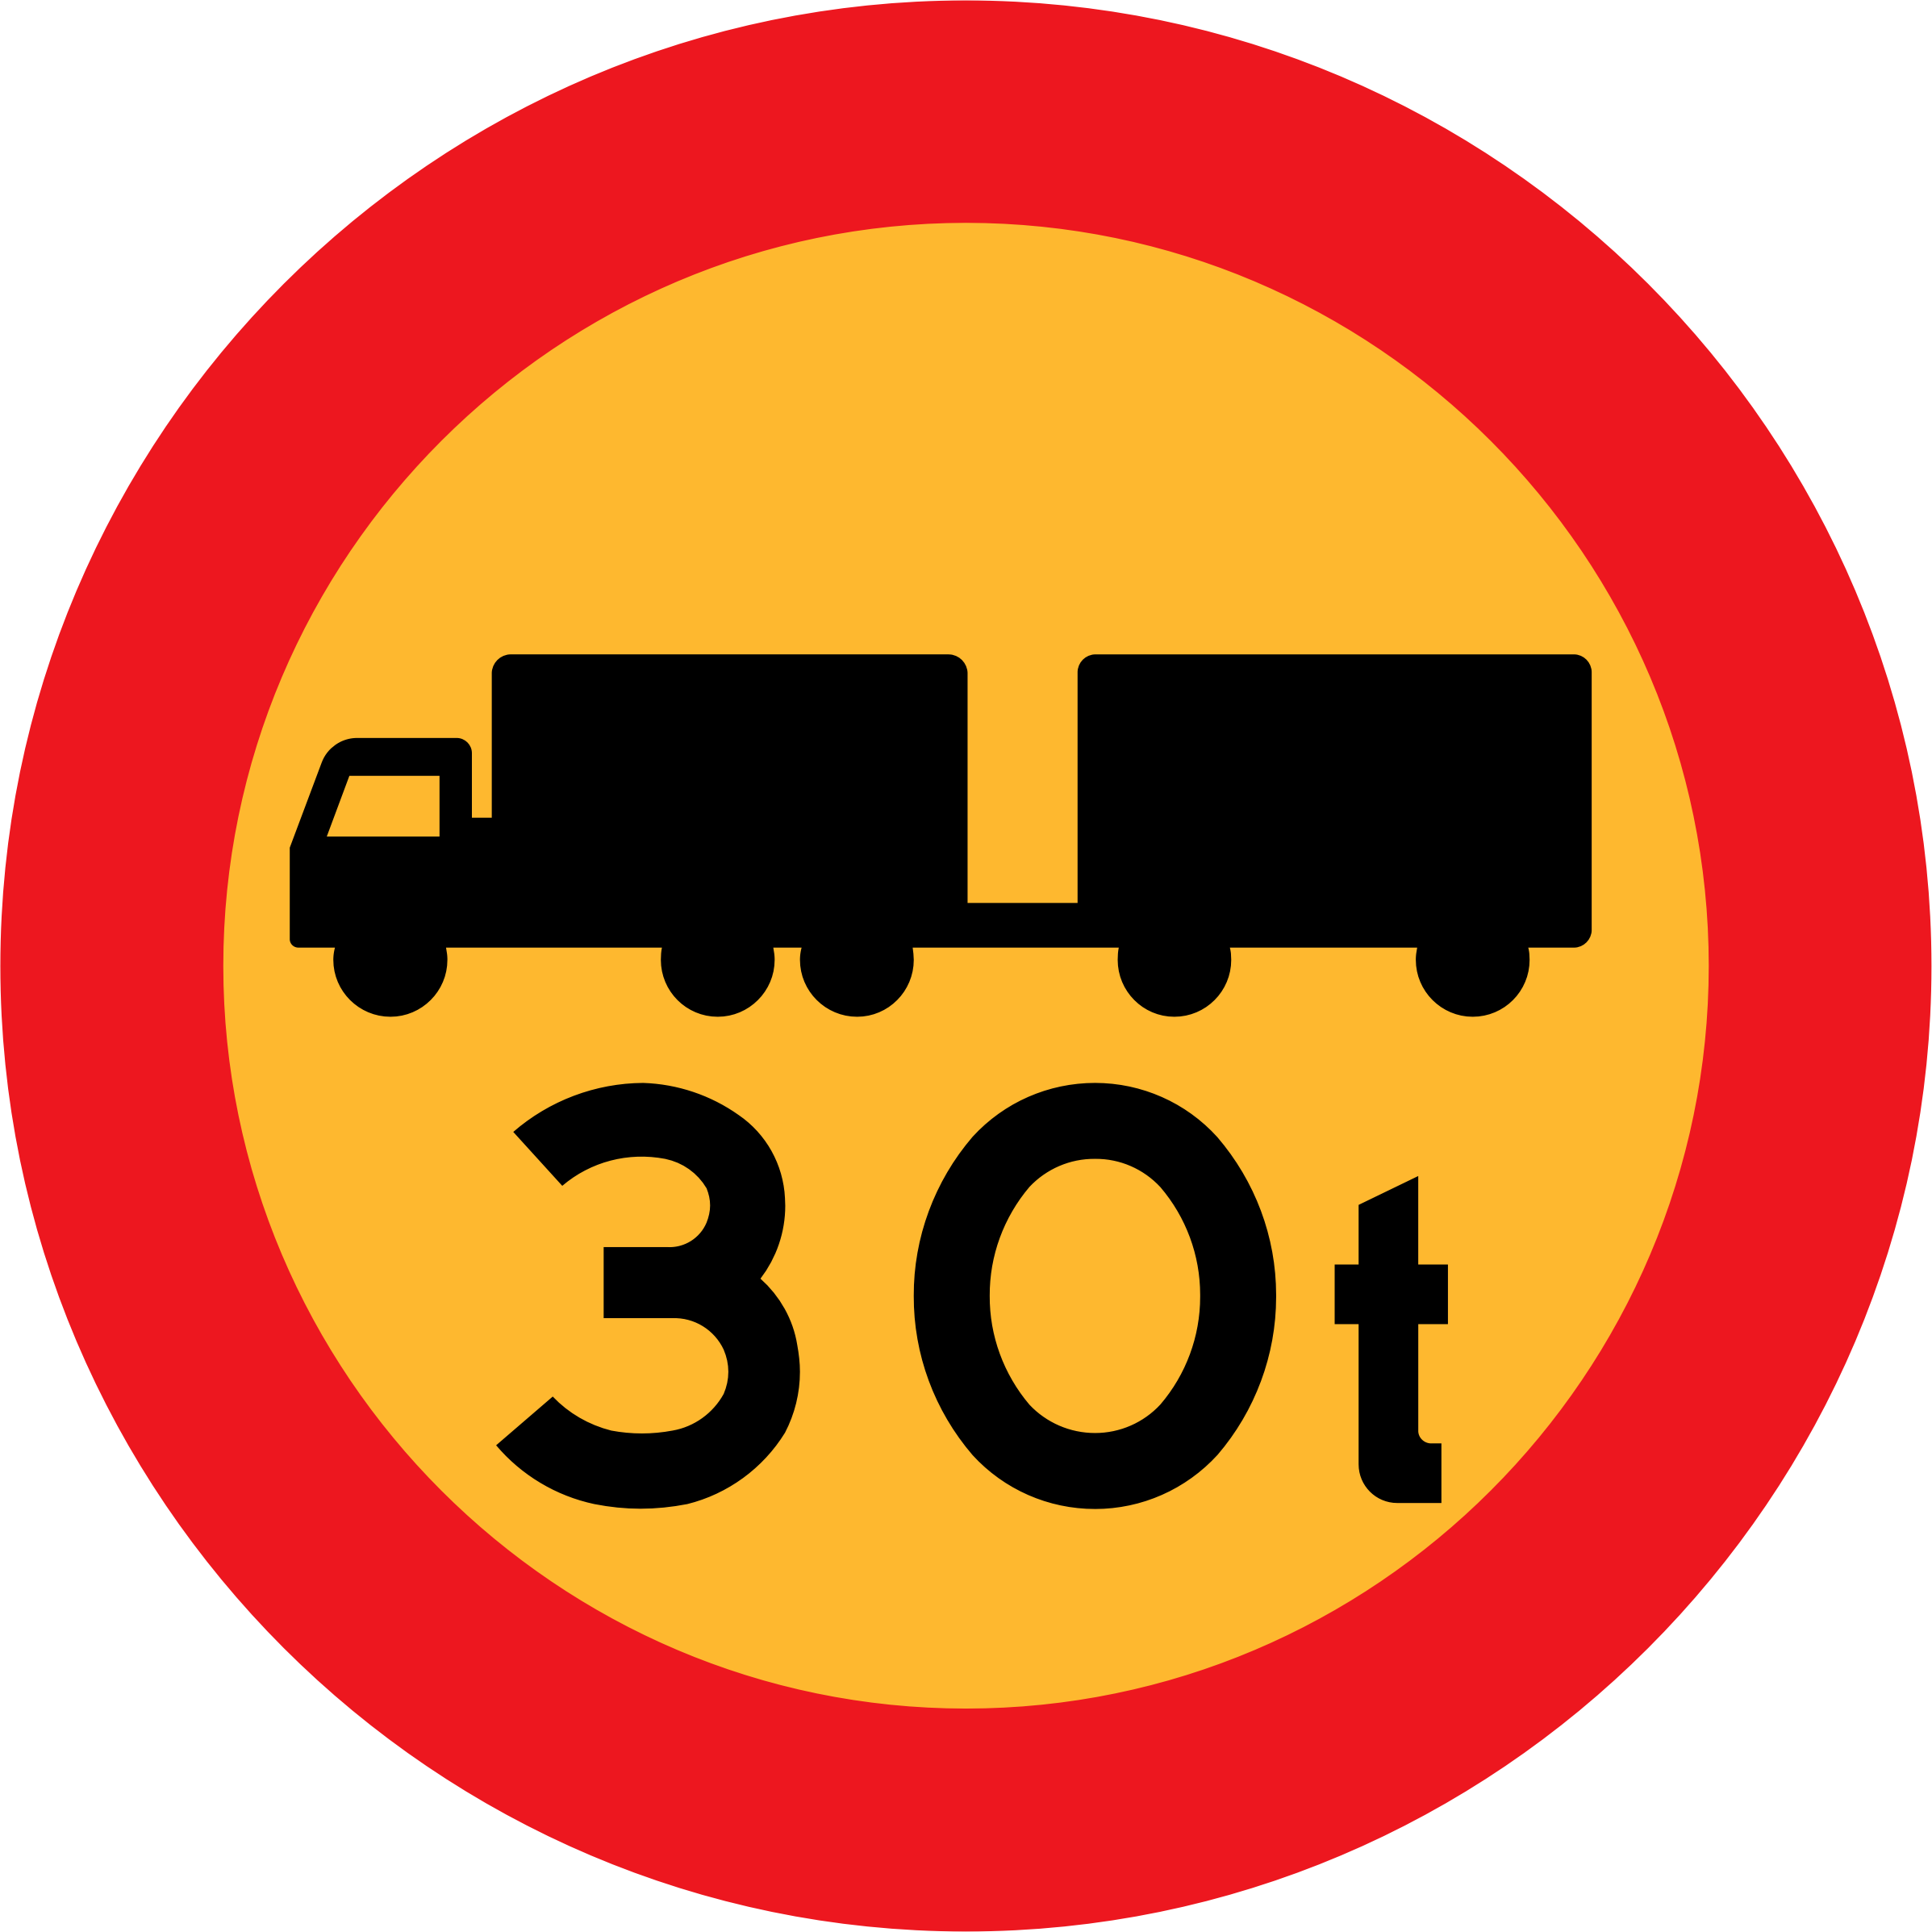 30t truck sign by ryanlerch